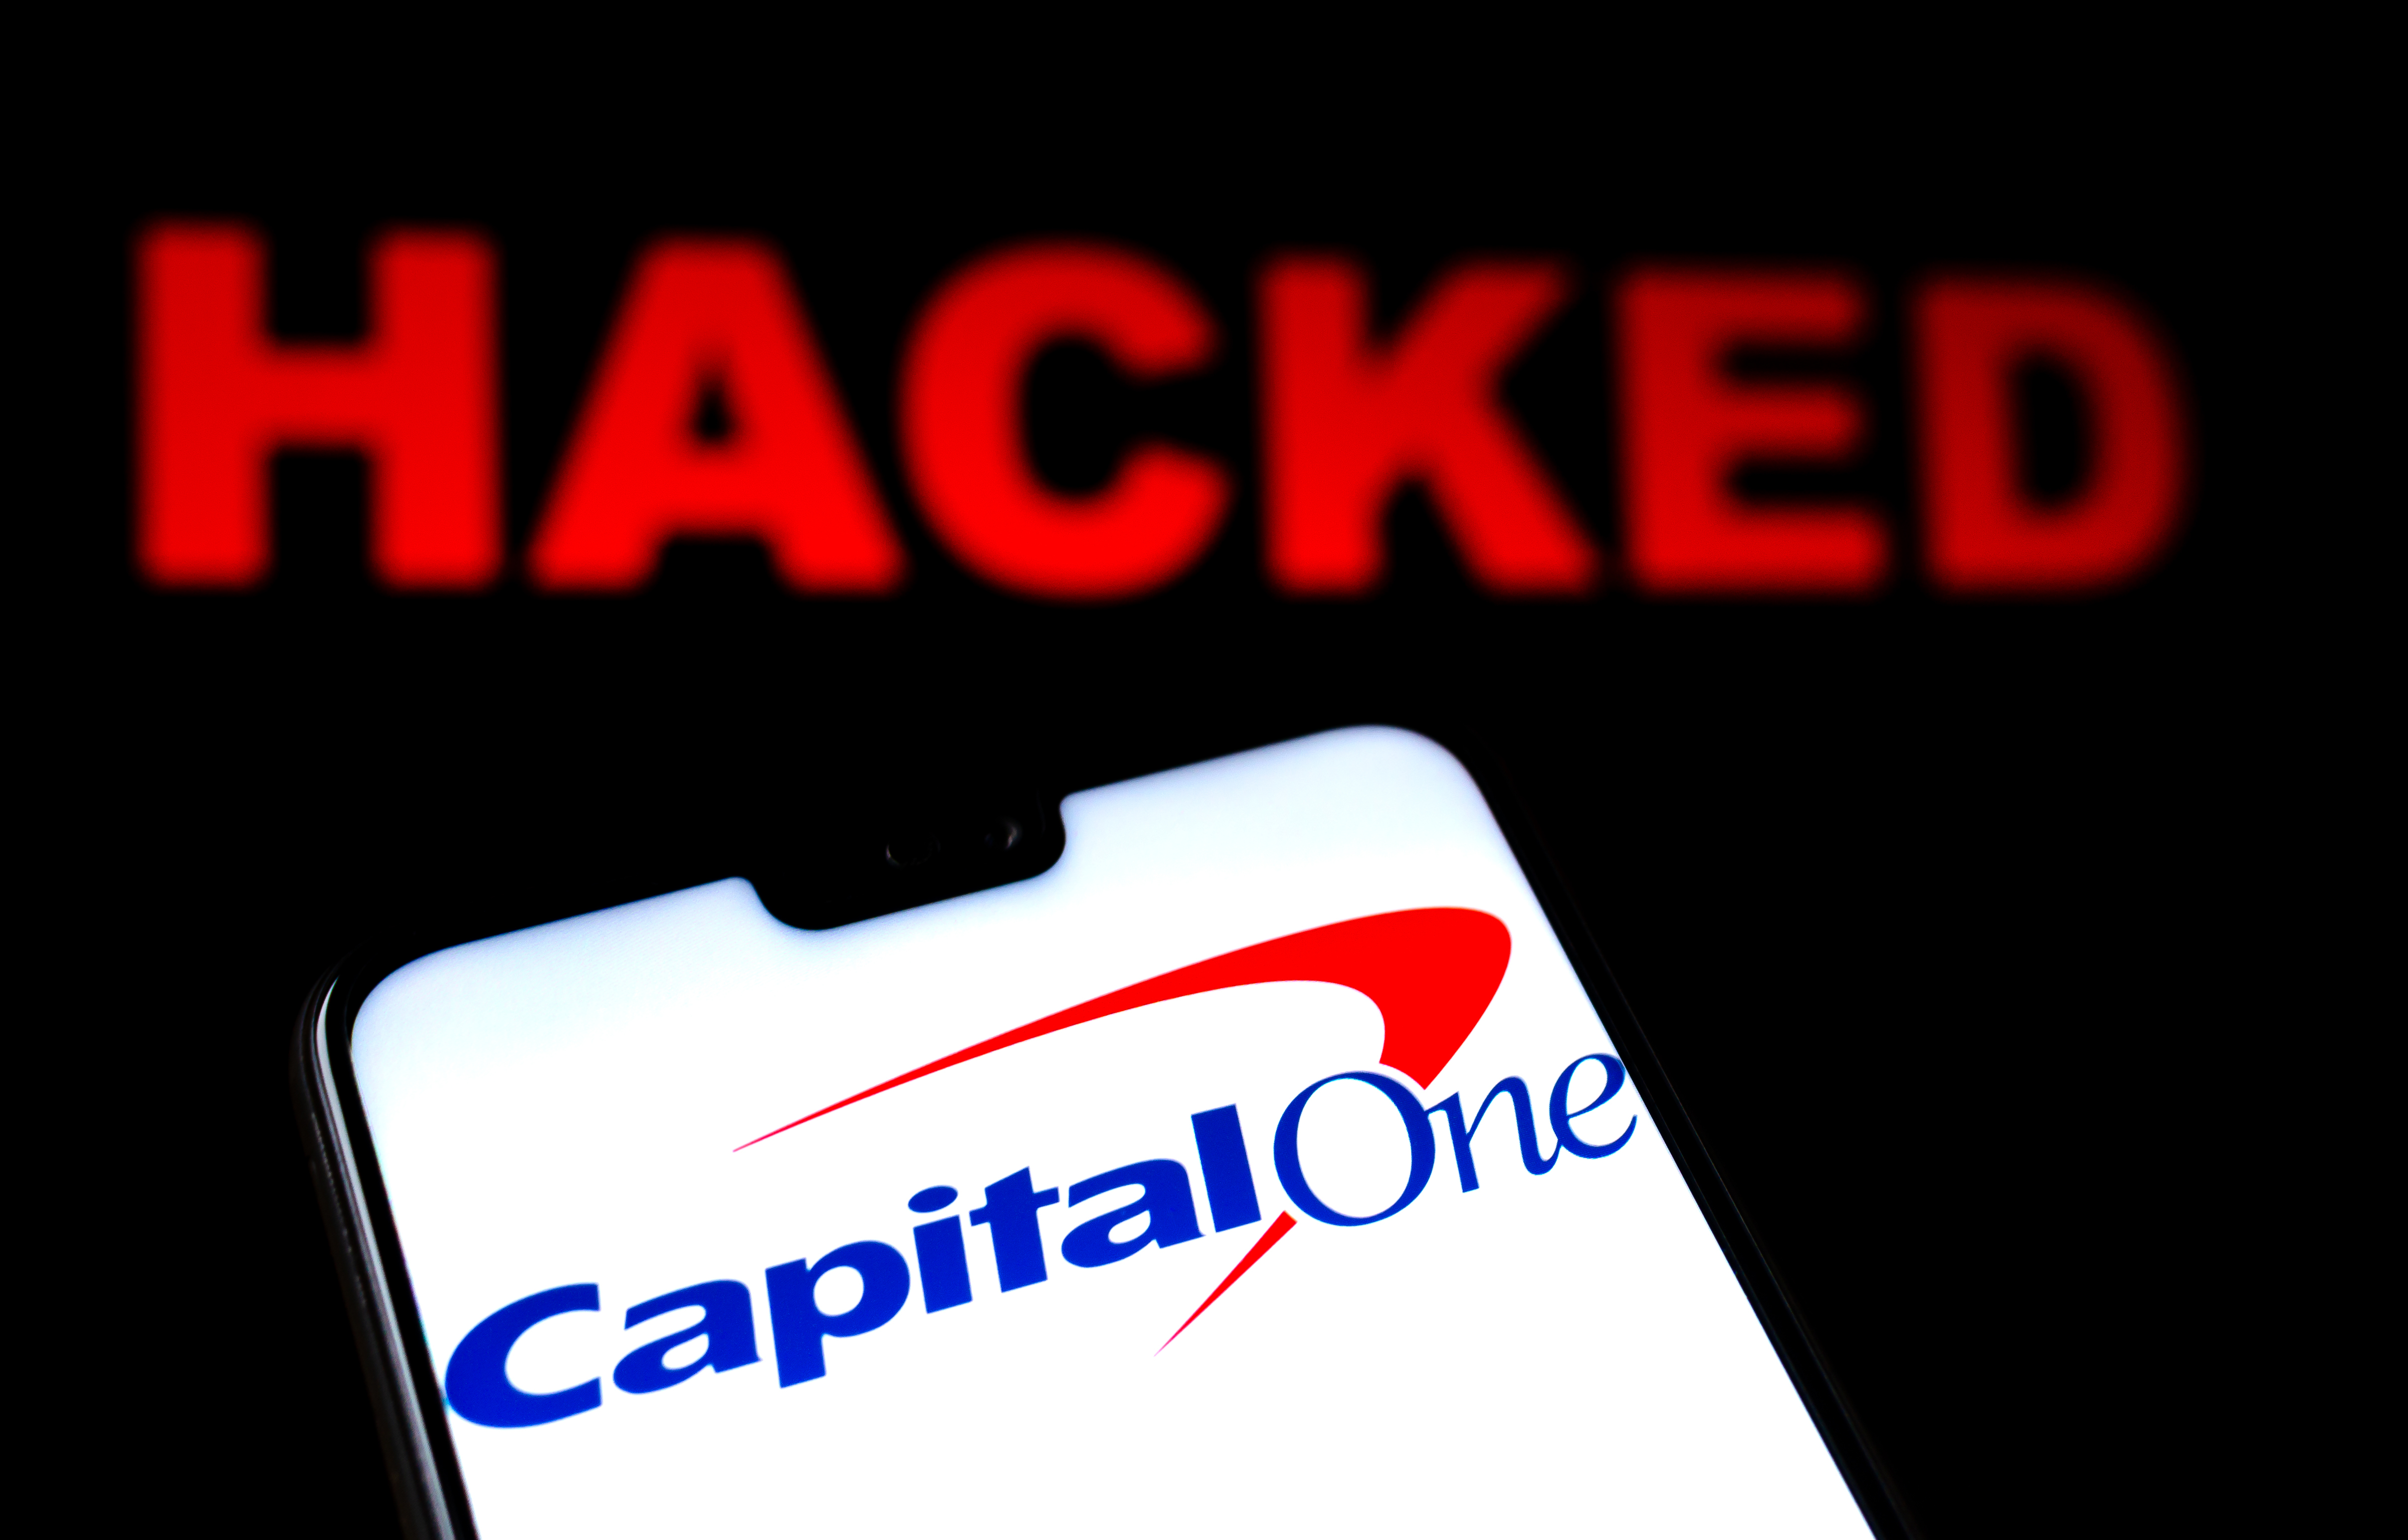 A Case for Cloud Security: Capital One Breach